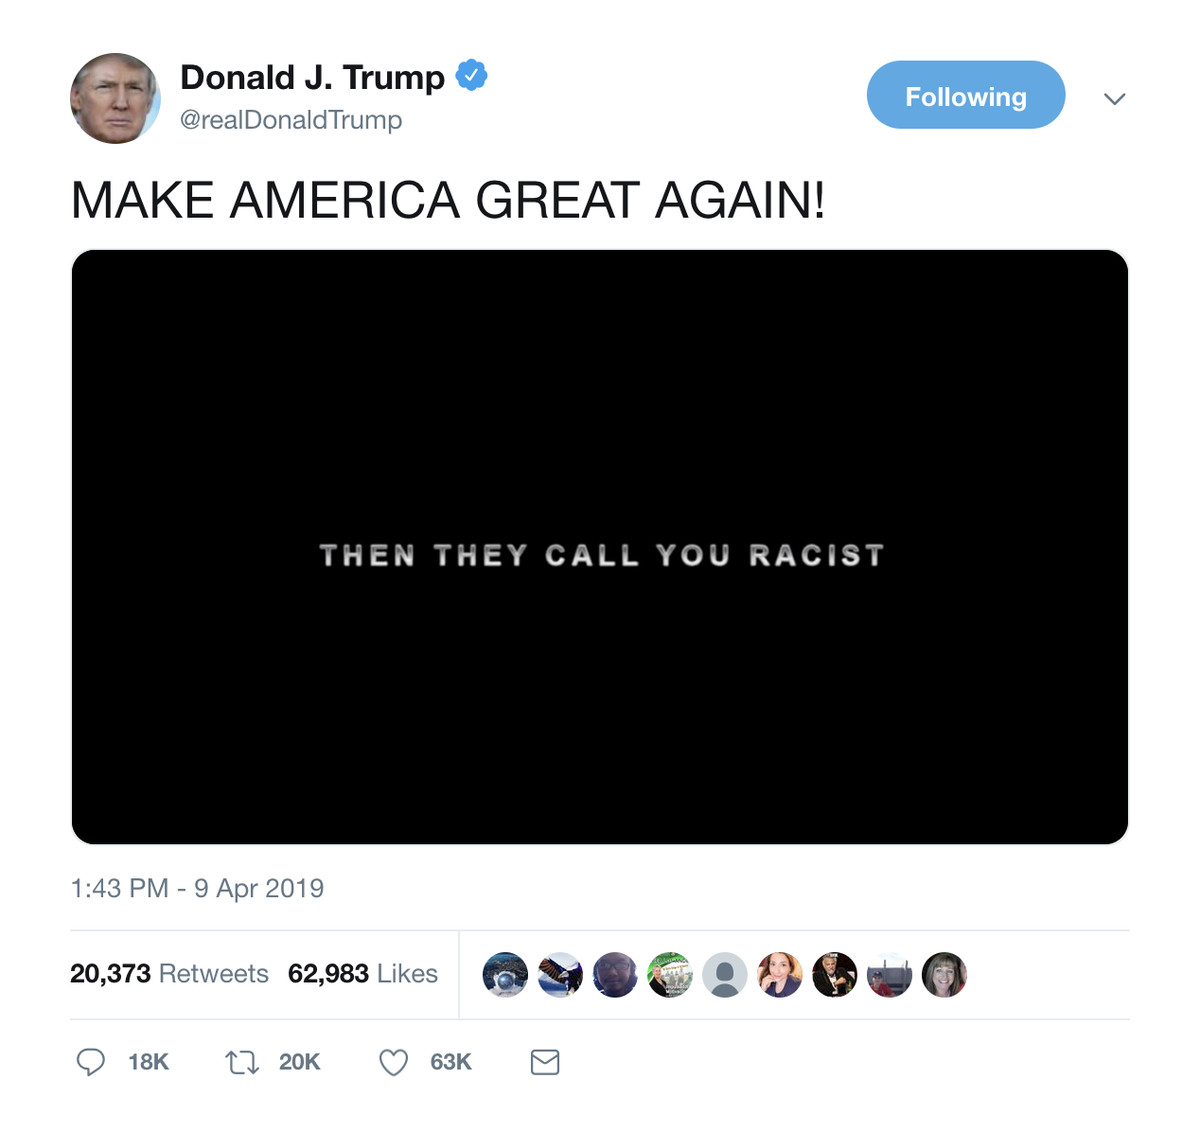 Twitter removes Trump's video featuring music from The Dark Knight for copyright infringement